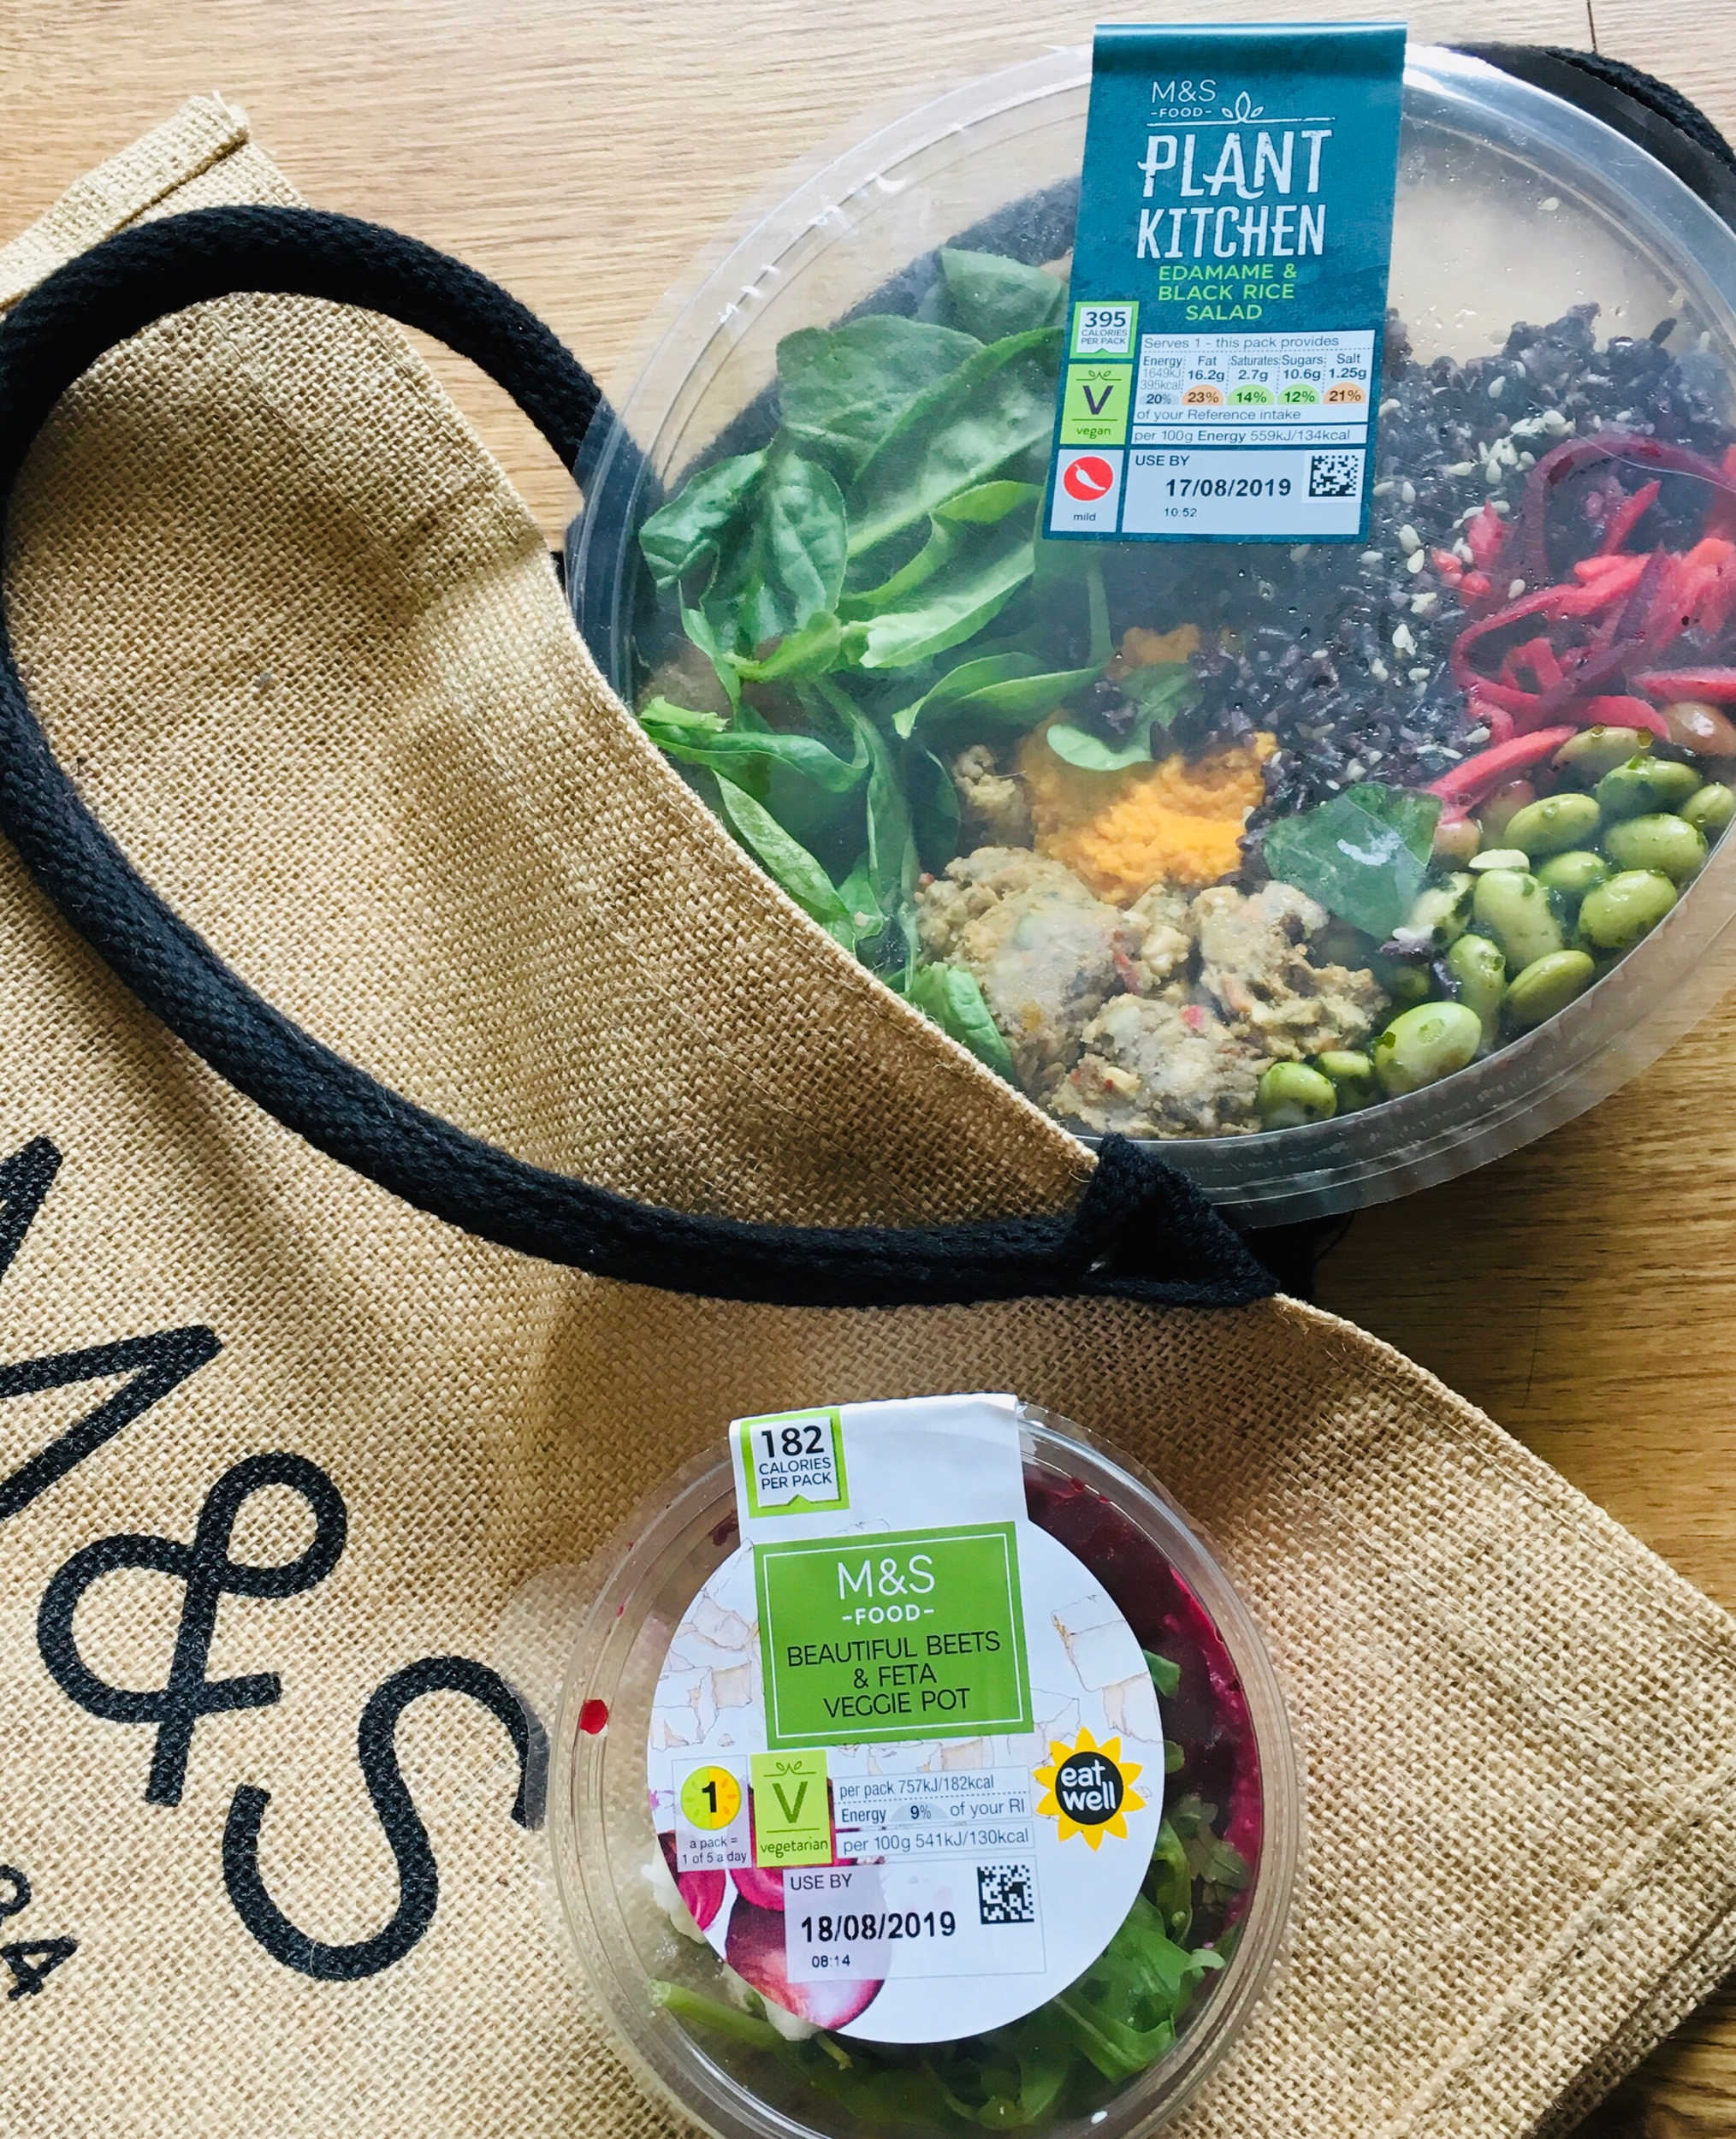 Plant kitchen nourish bowl £3.50 : Beets protein pot £2